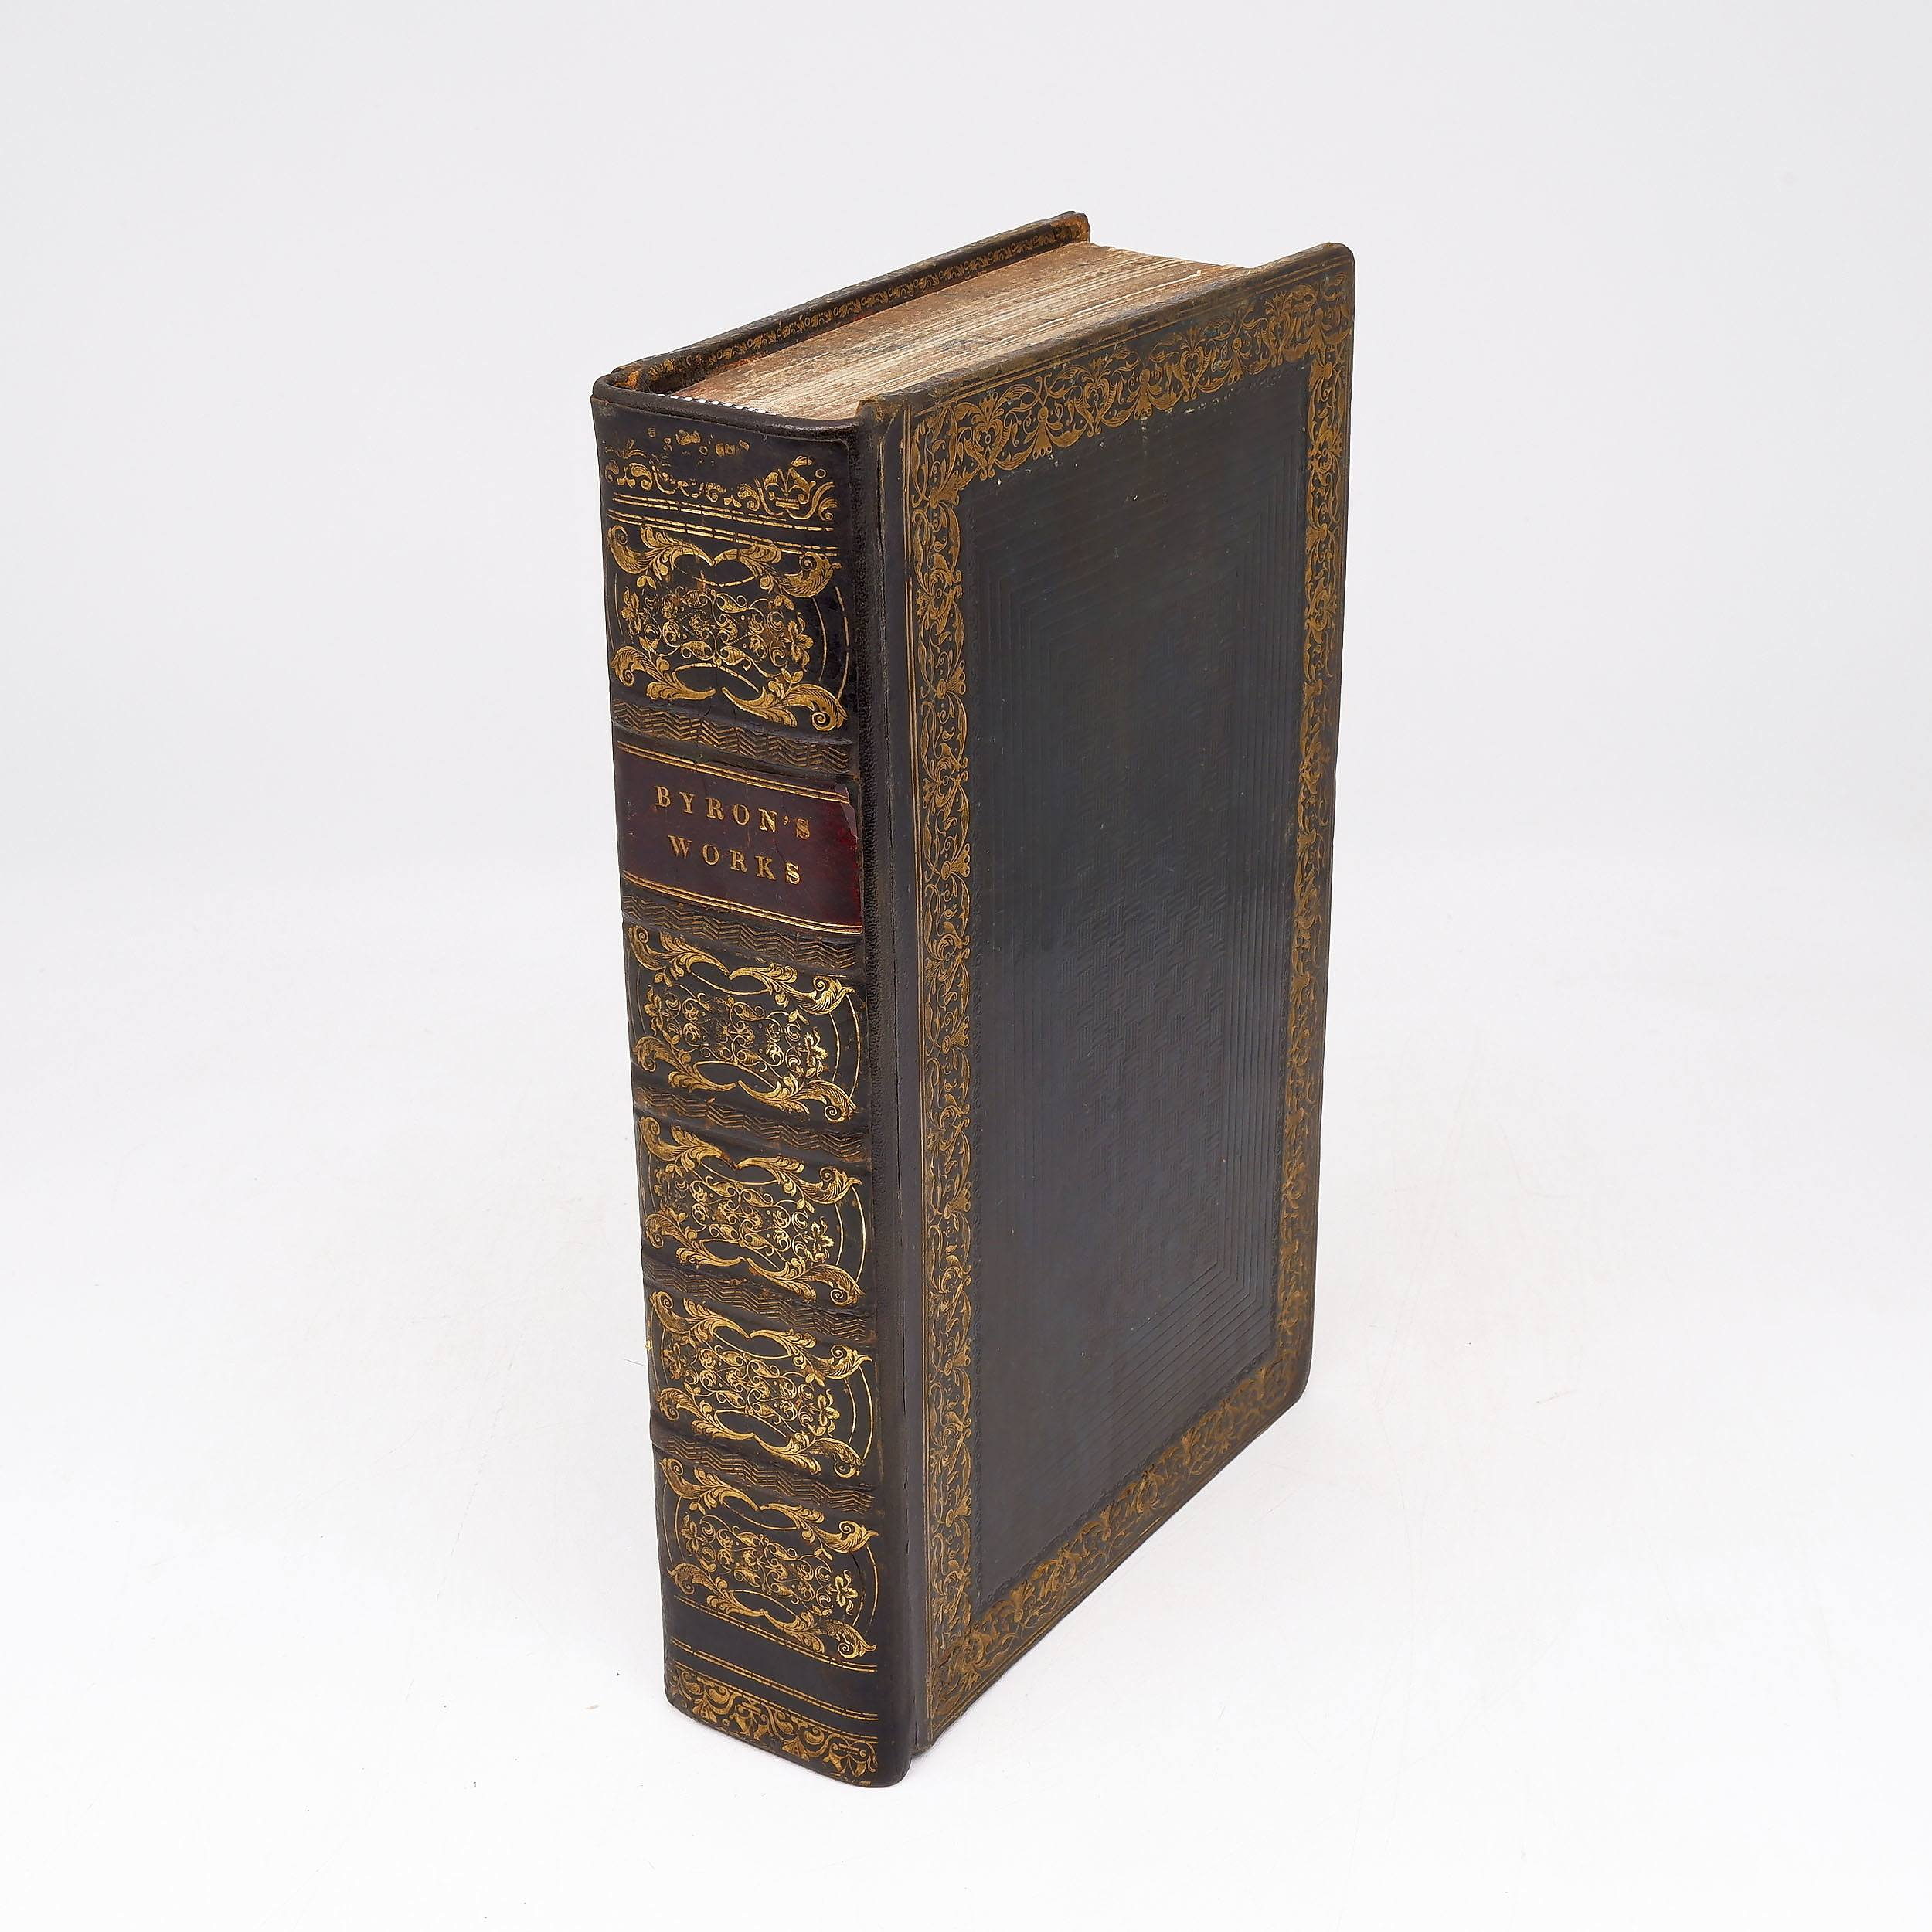 'The Works of Lord Byron, Published by A and W Galignani, Paris 1827'